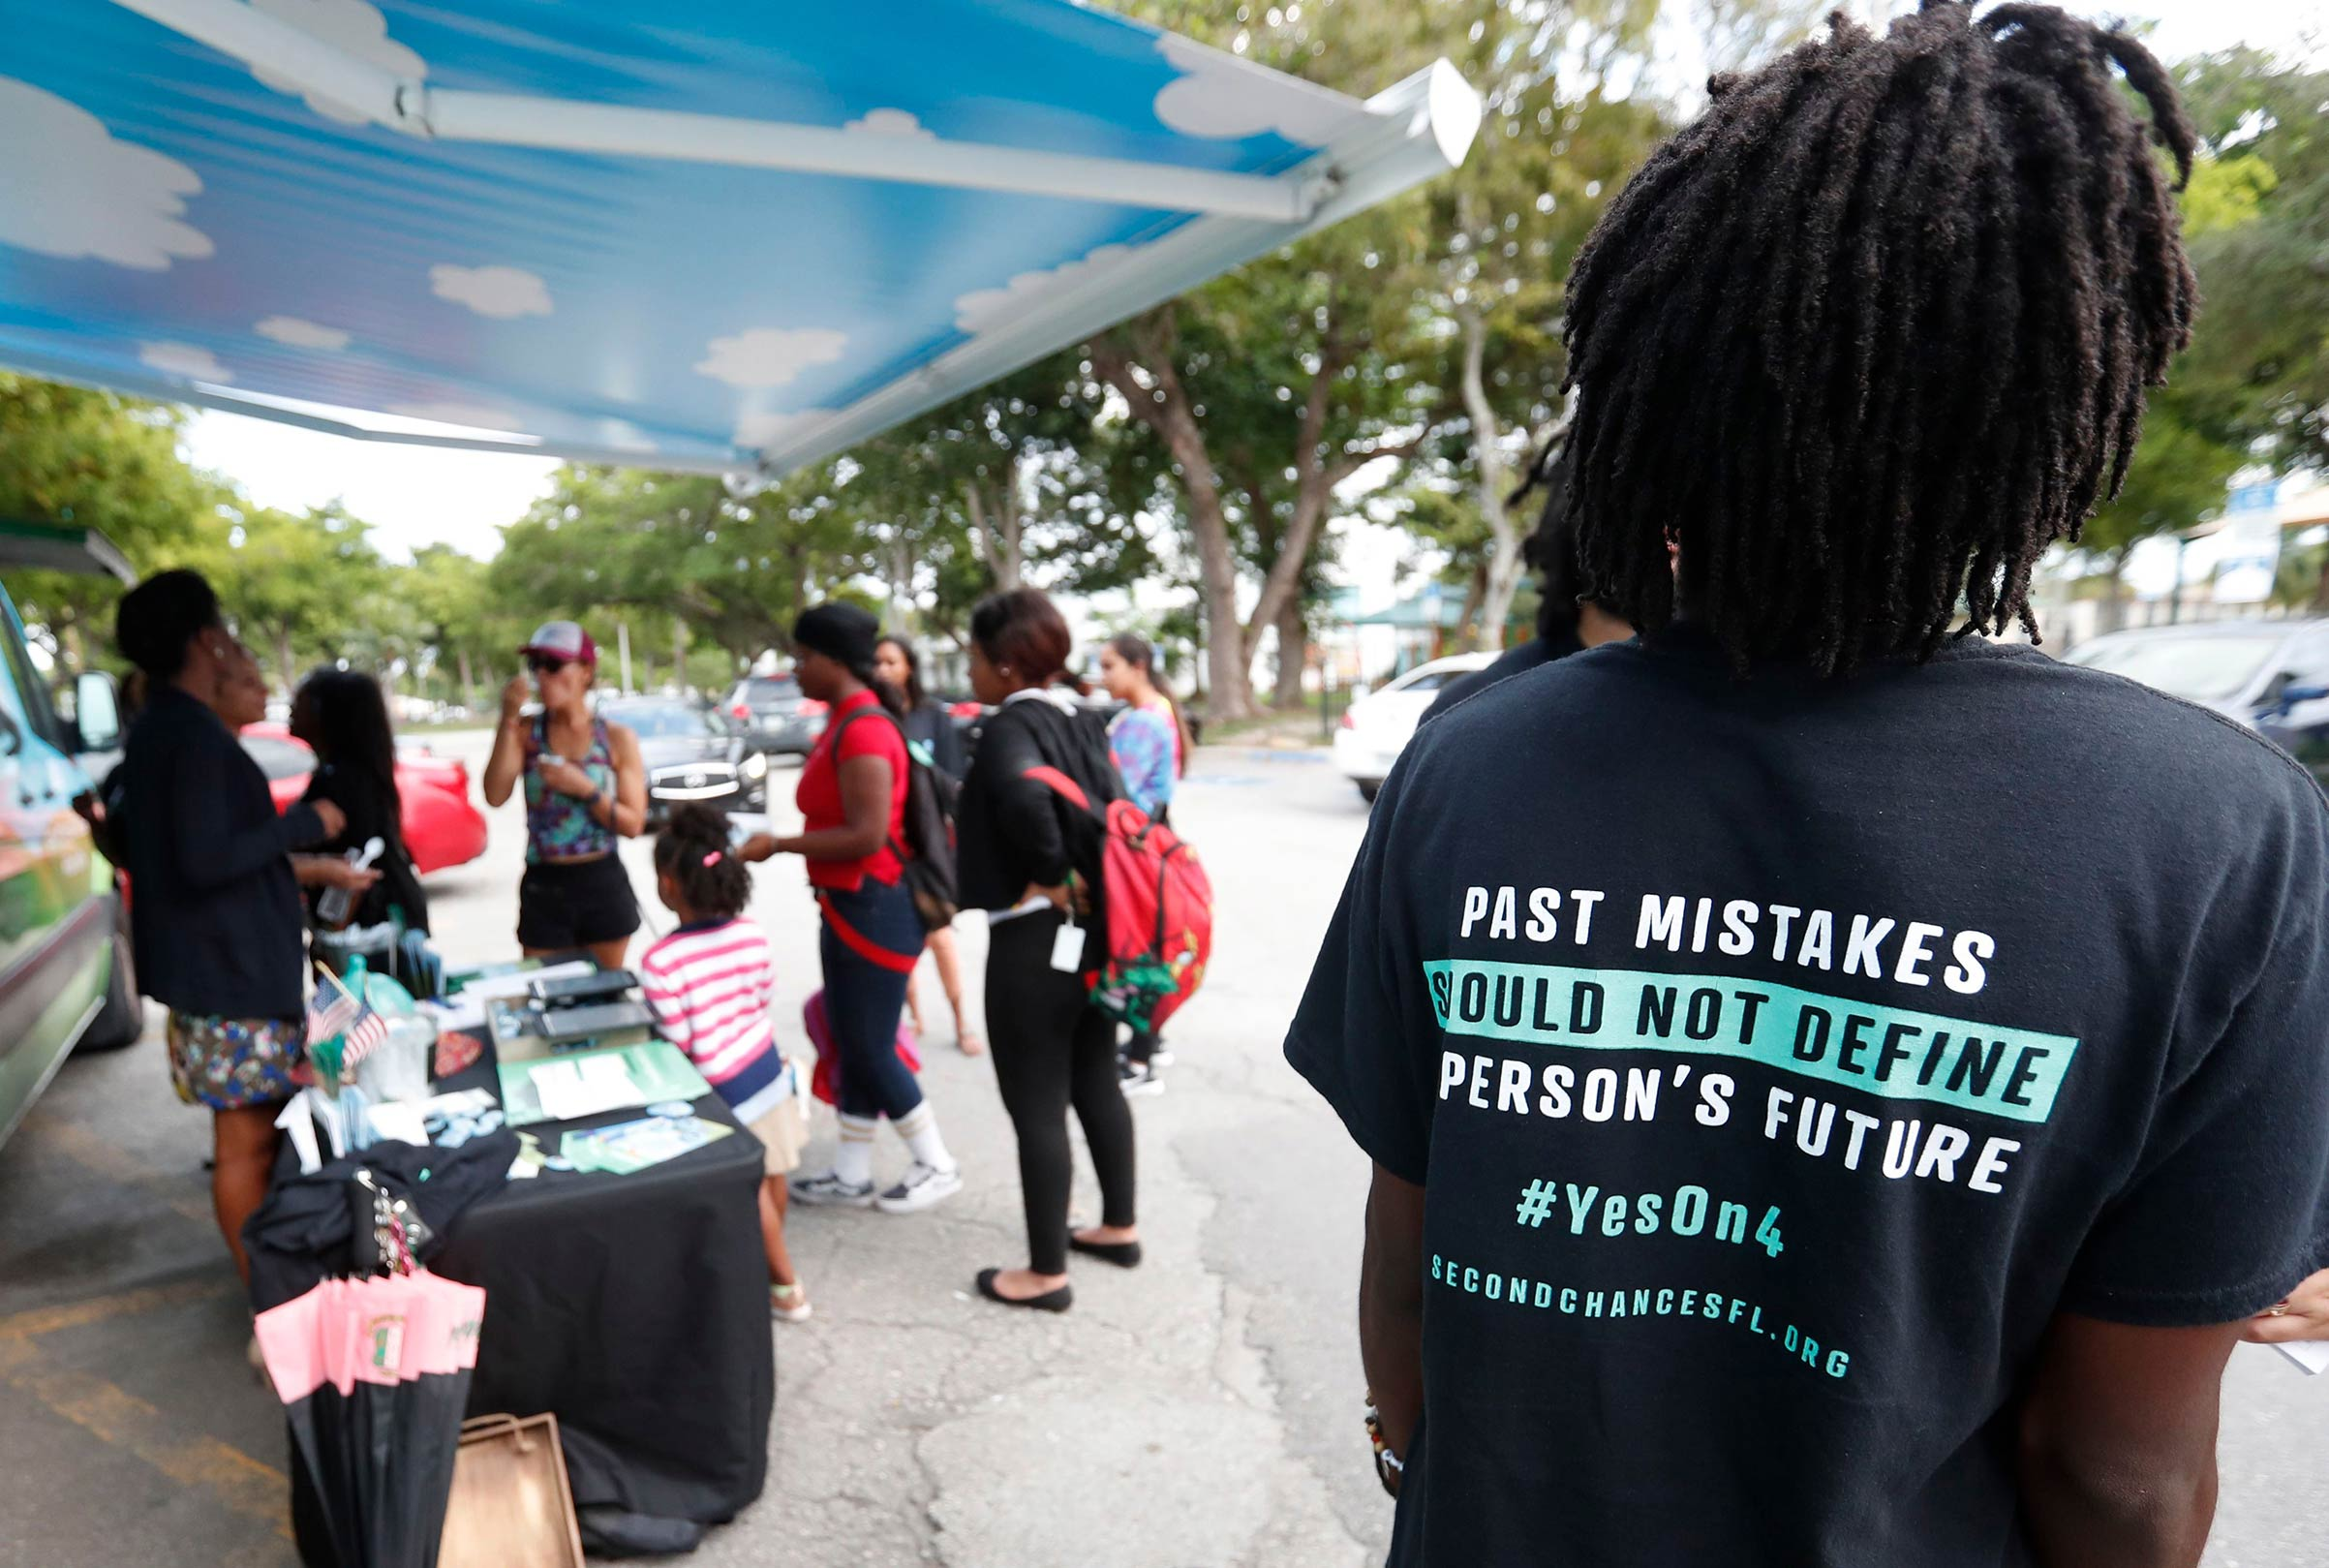 People gather around the Ben & Jerry's  Yes on 4  truck as they learn about Amendment 4 and eat free ice cream at Charles Hadley Park in Miami on Oct. 22, 2018.